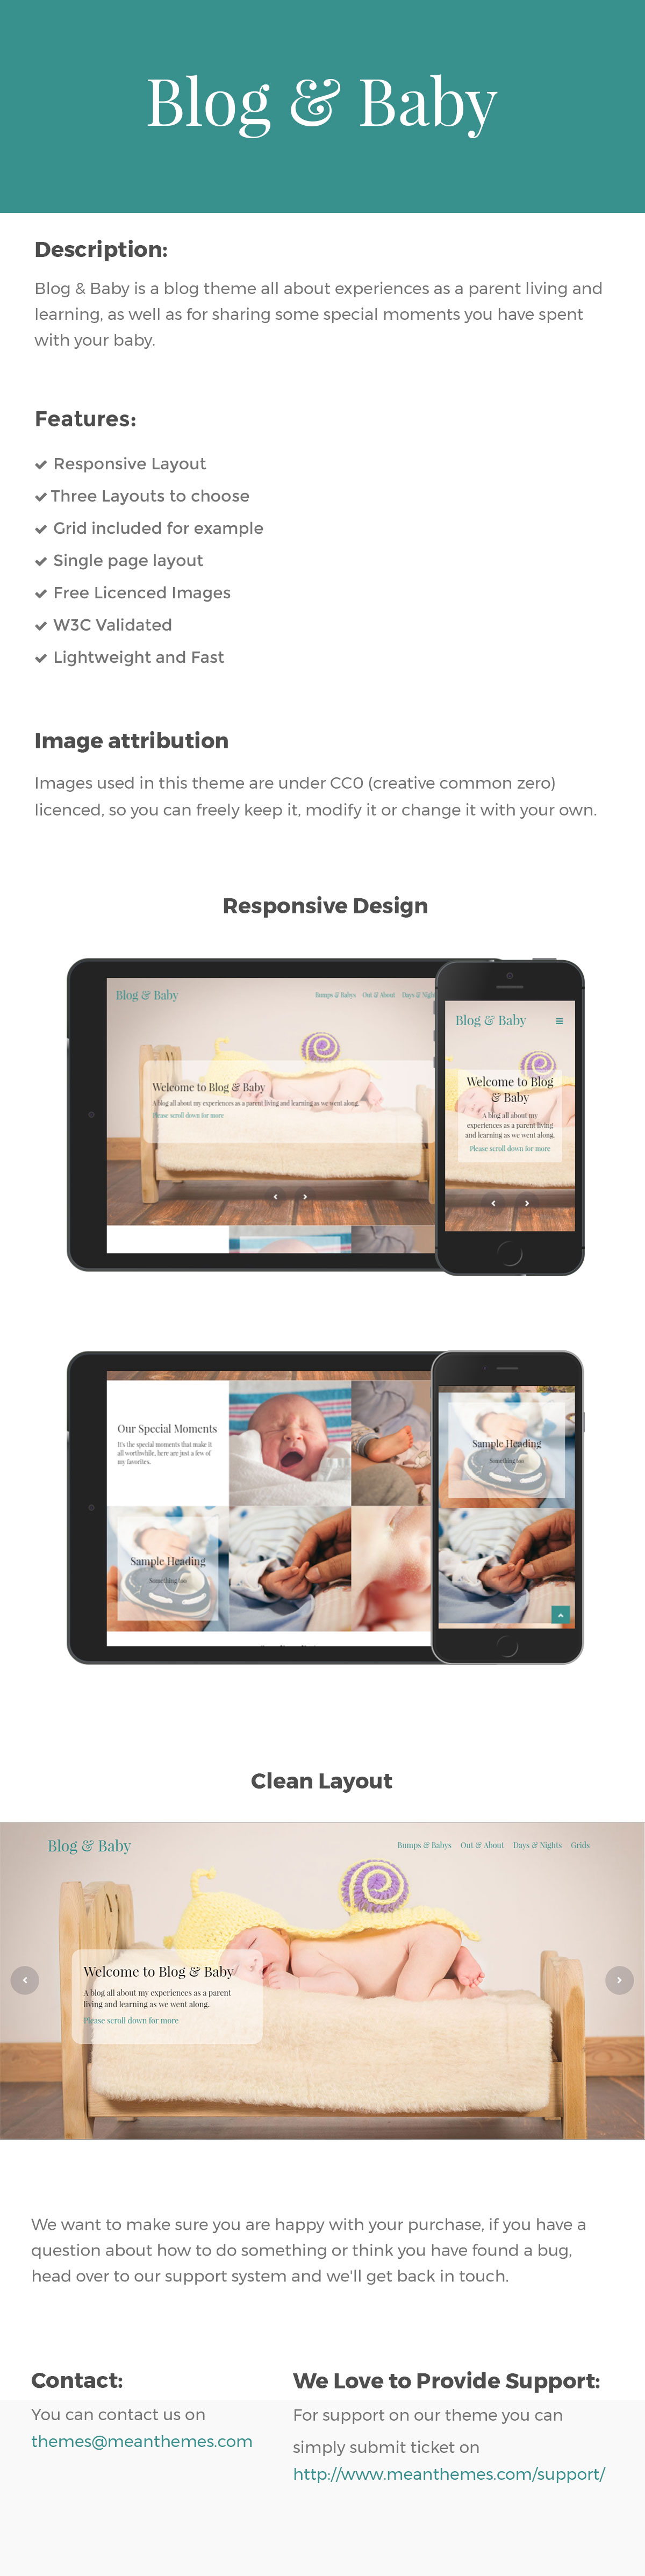 Blog & Baby - Responsive HTML Template For Baby Blogs by meanthemes